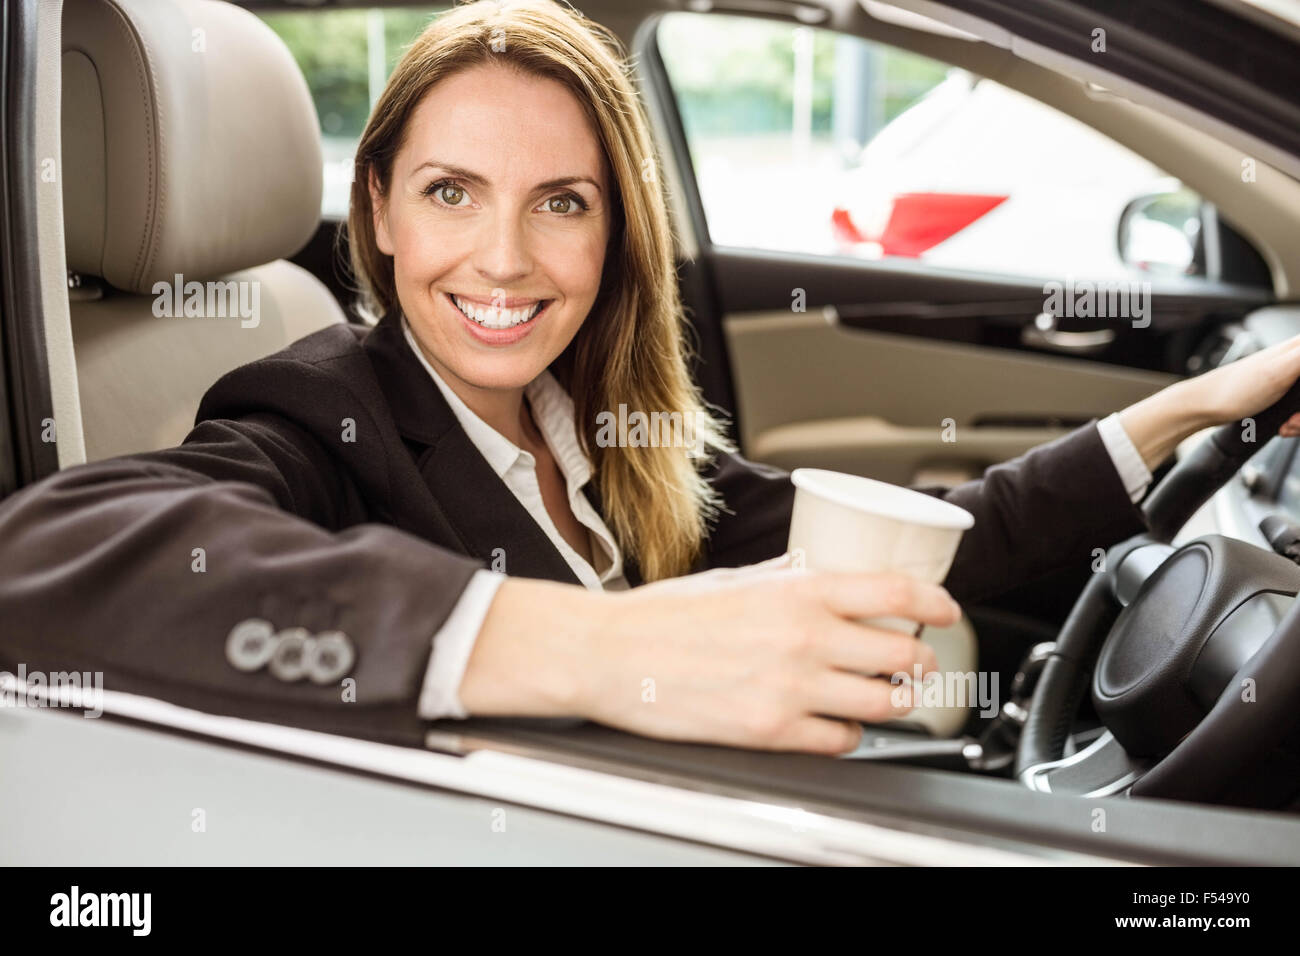 Smiling businesswoman siting in a car - Stock Image